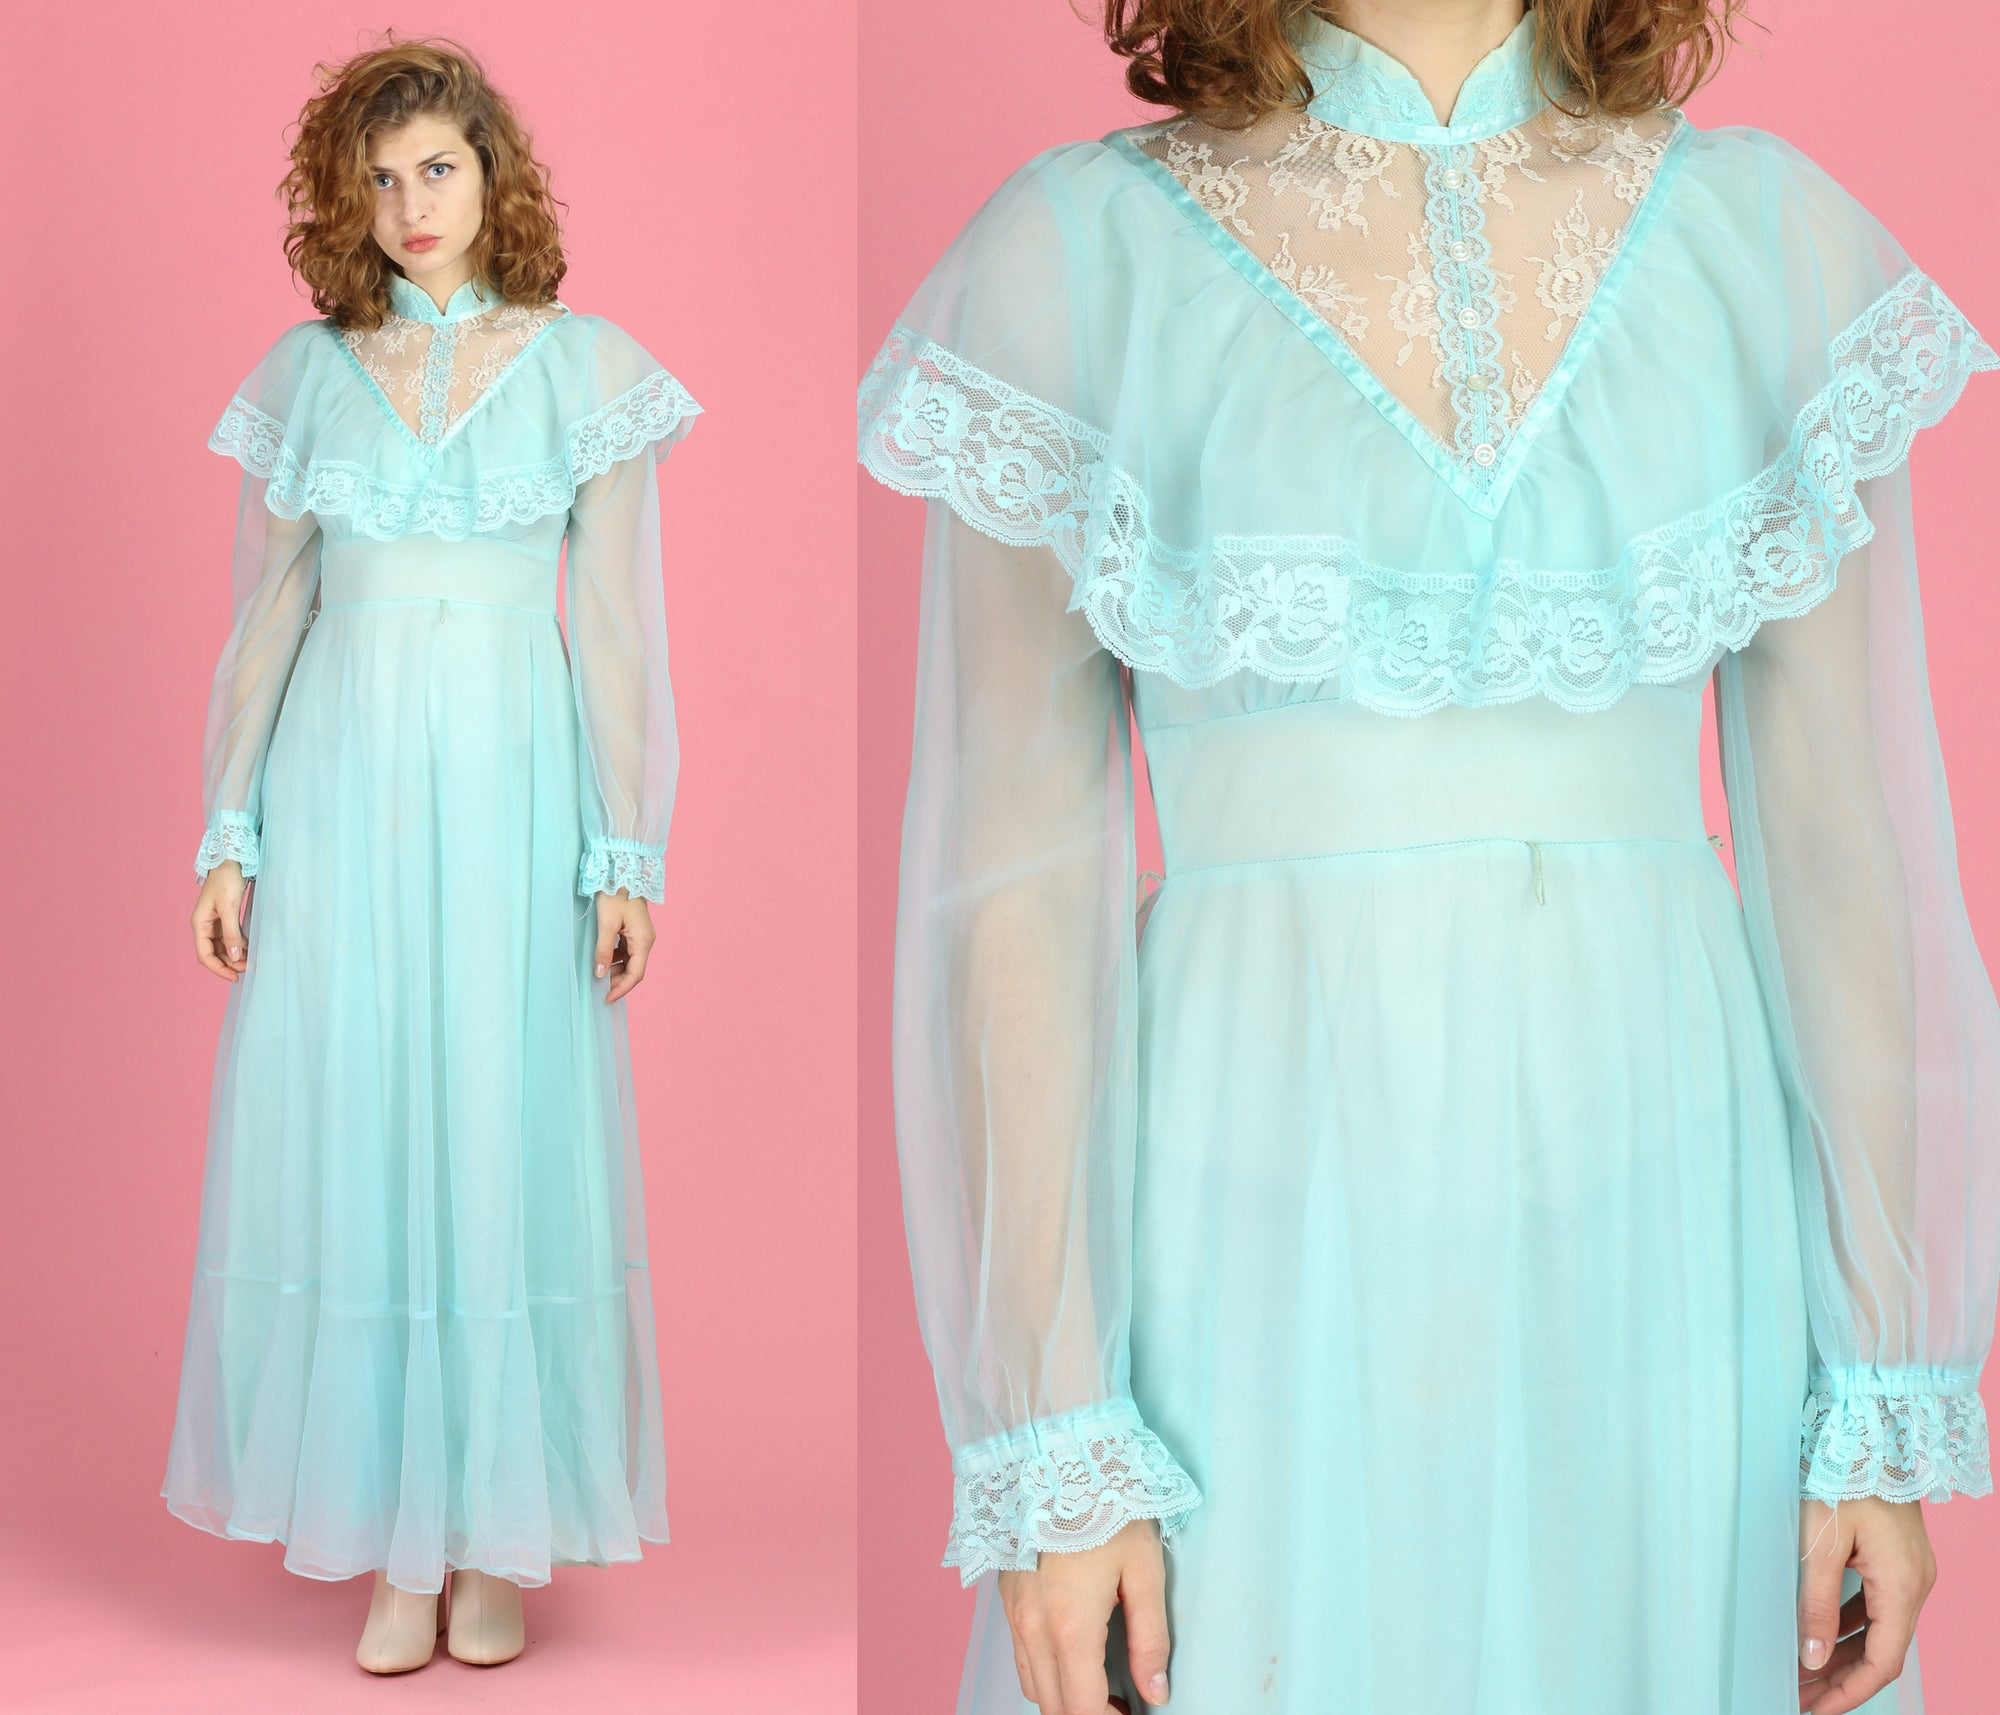 70s Blue Victorian Lace Trim Gown - Small to Medium